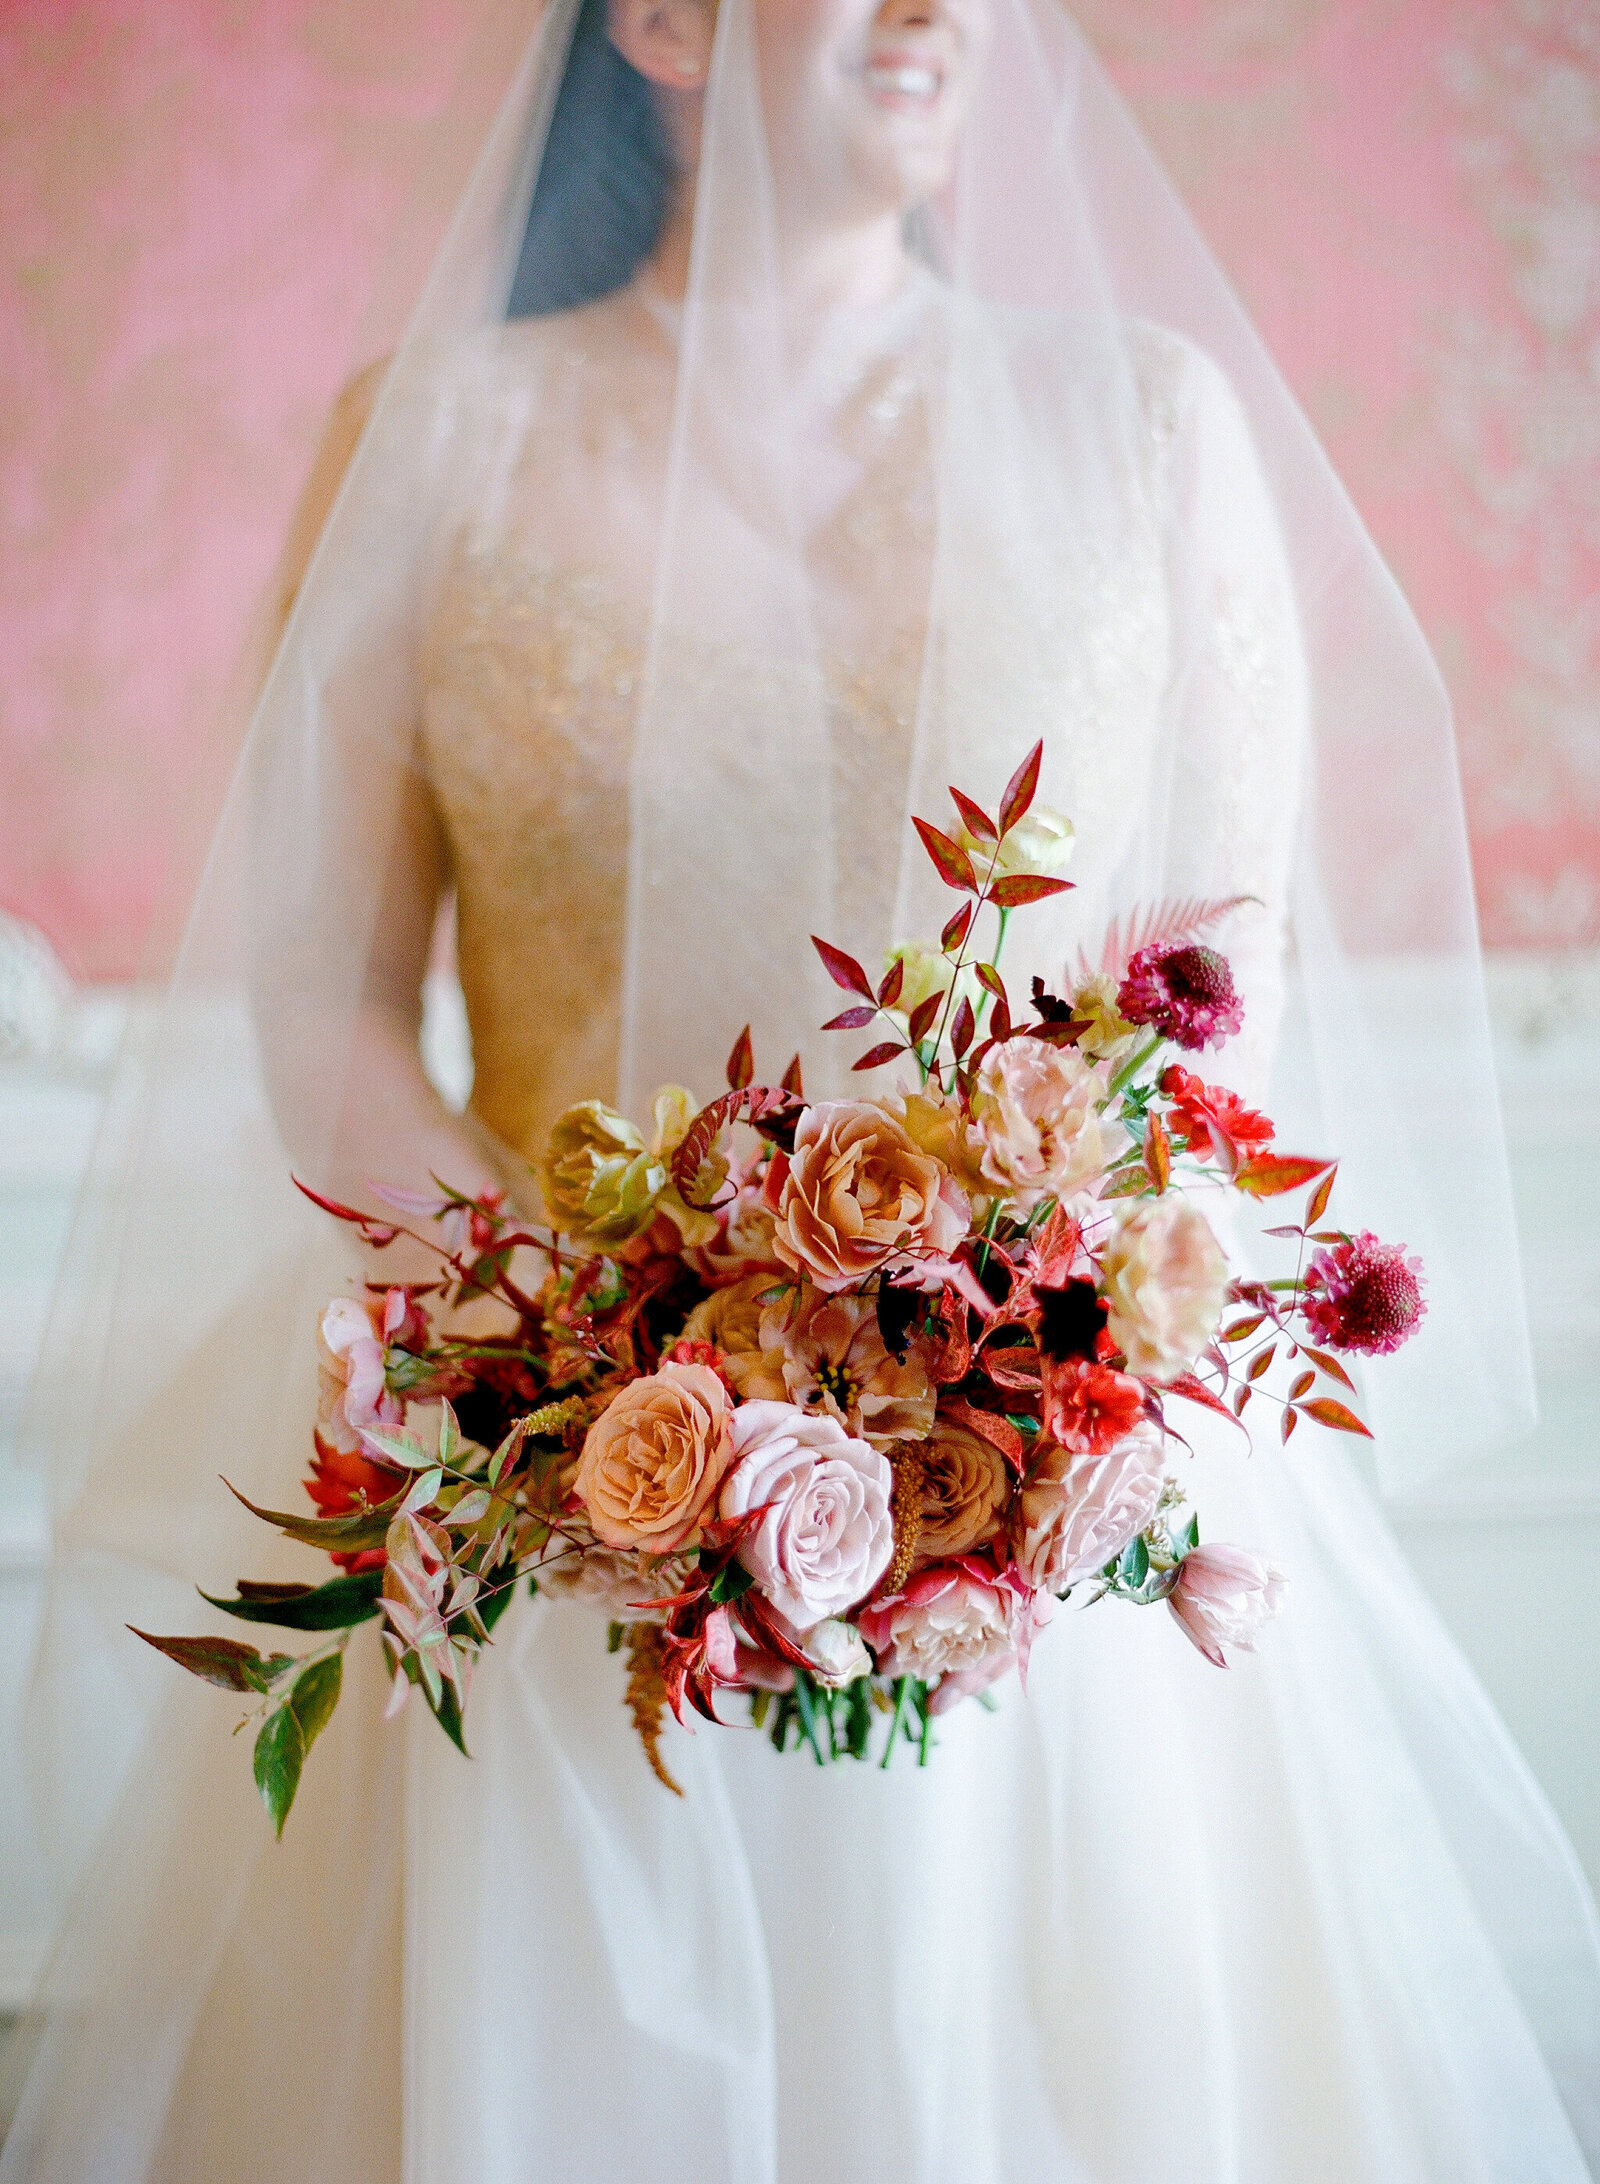 harpers-bazaar-best-wedding-florist-max-owens-bouquet